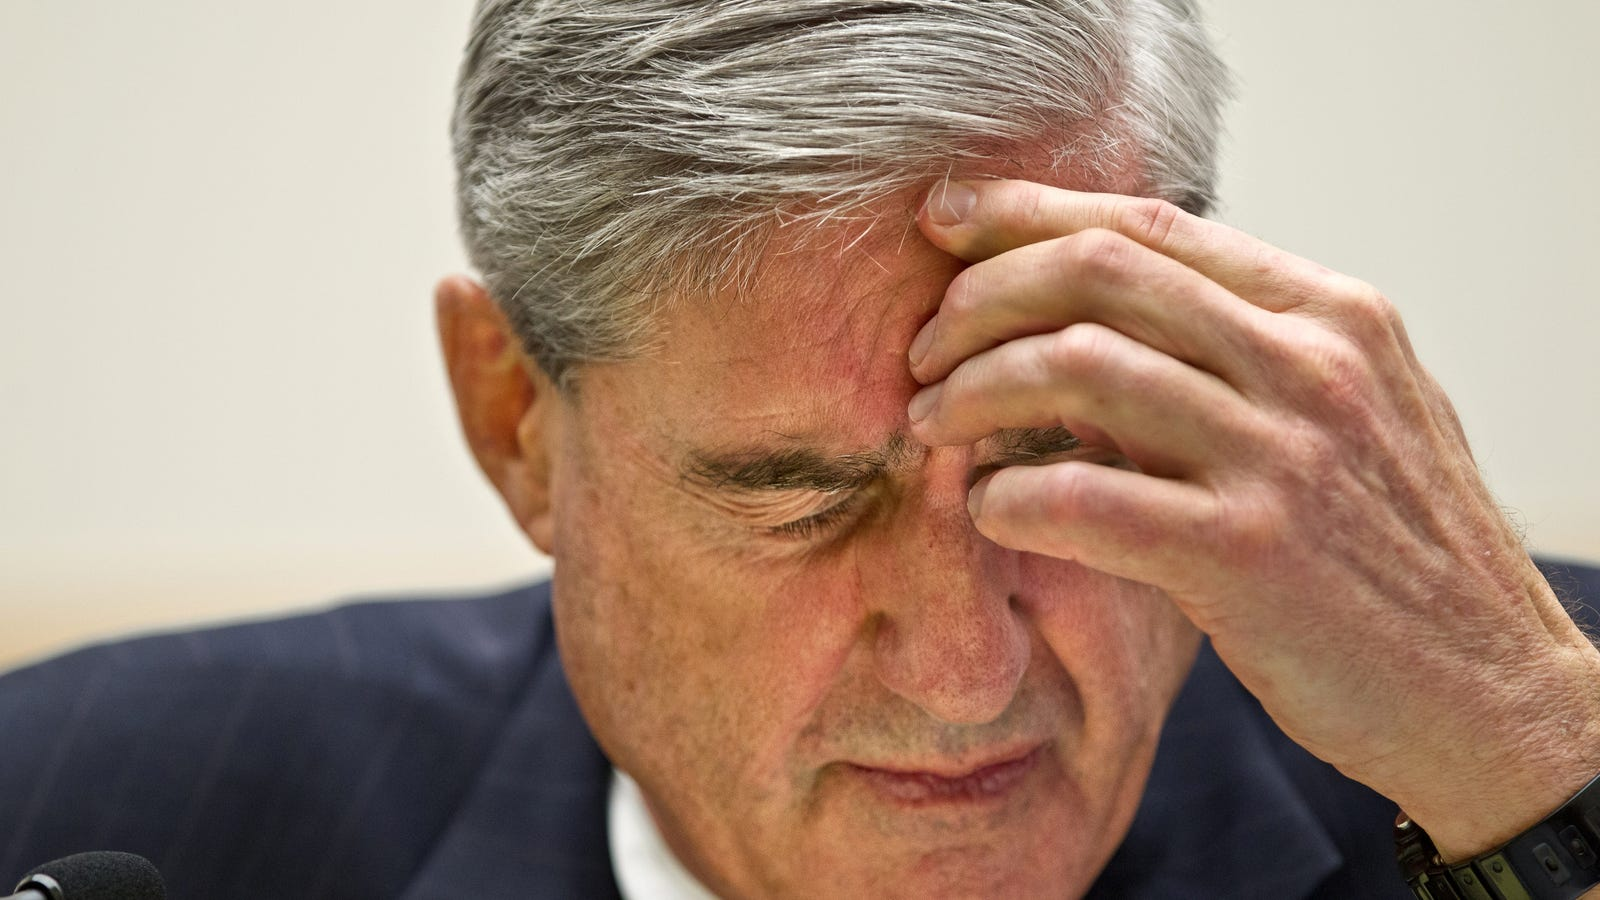 QnA VBage Mueller Report Doesn't Say Trump Conspired With Russia, But It Also Doesn't Exonerate Him